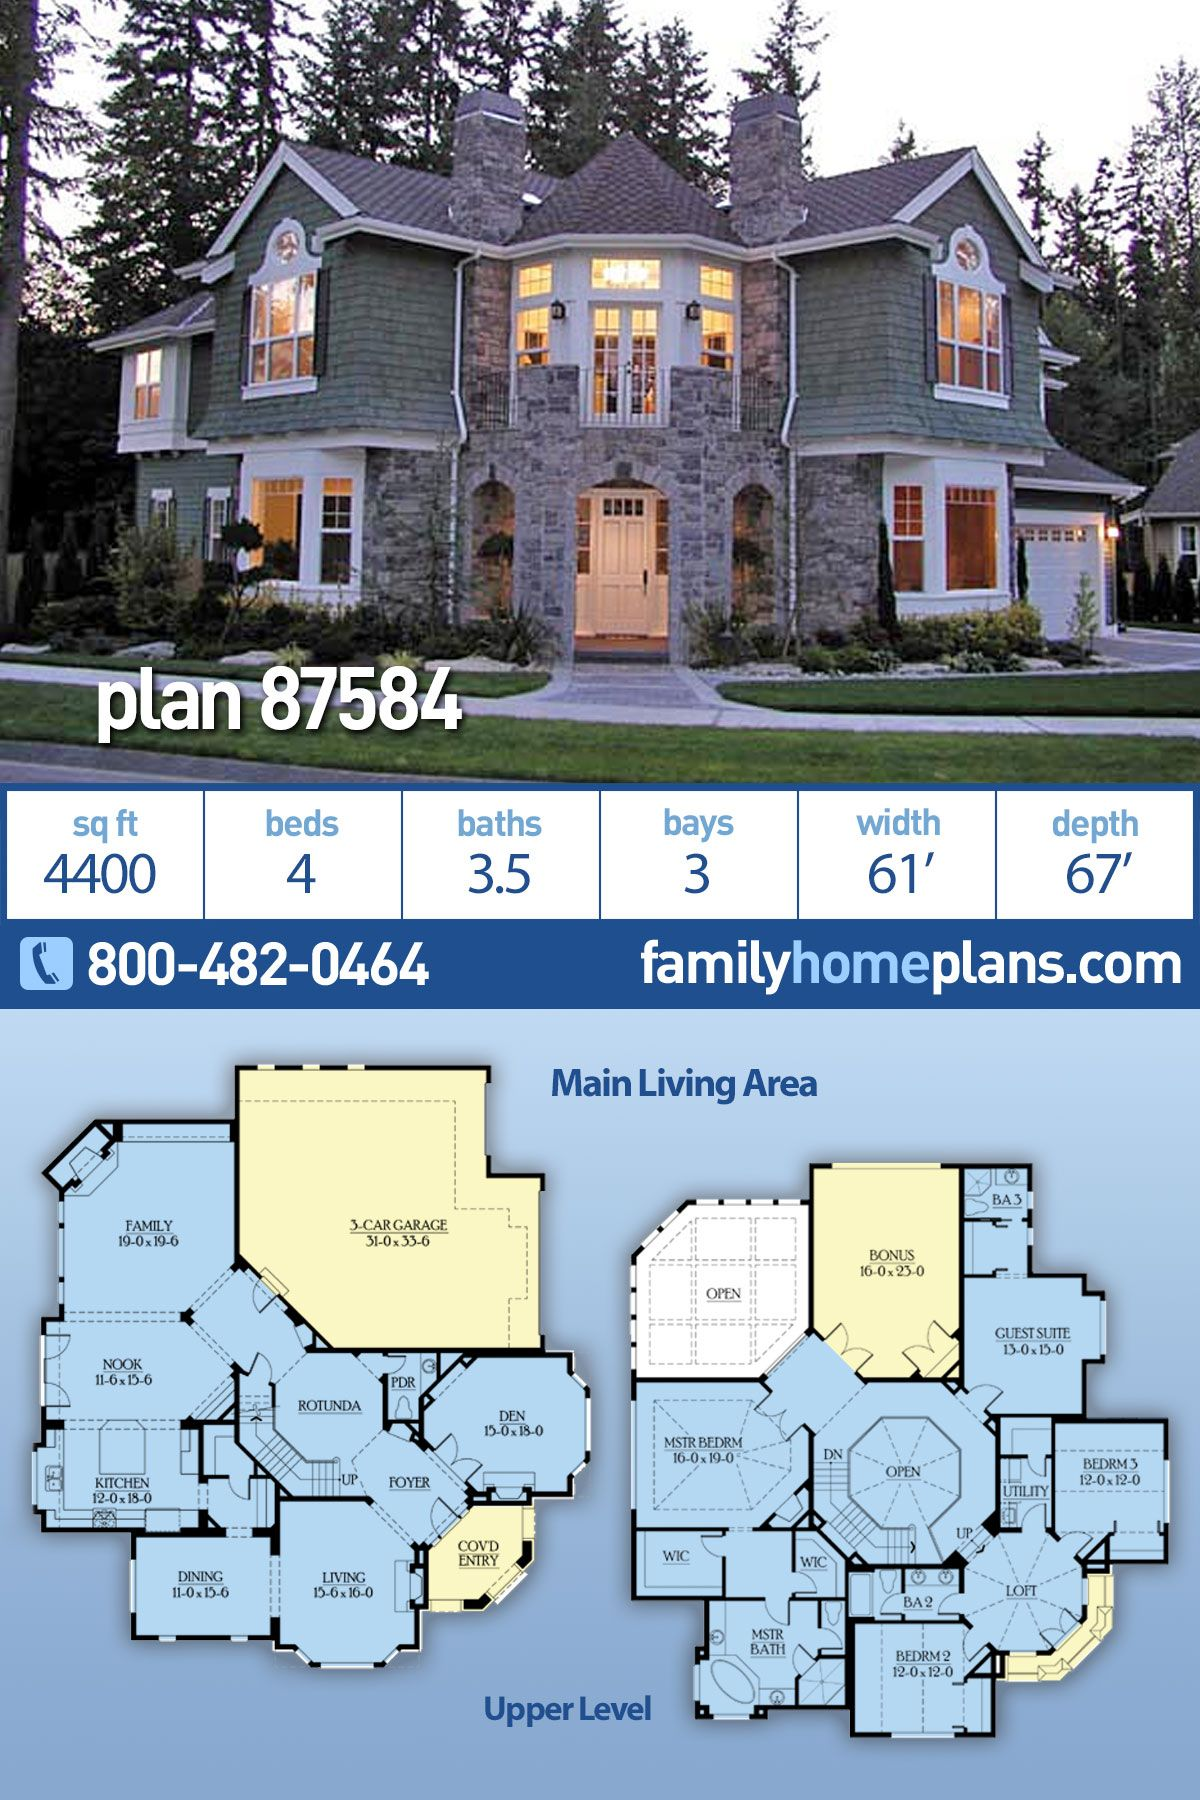 Victorian Style House Plan 87584 With 4 Bed 4 Bath 3 Car Garage Large House Plans Beach House Floor Plans Victorian House Plans